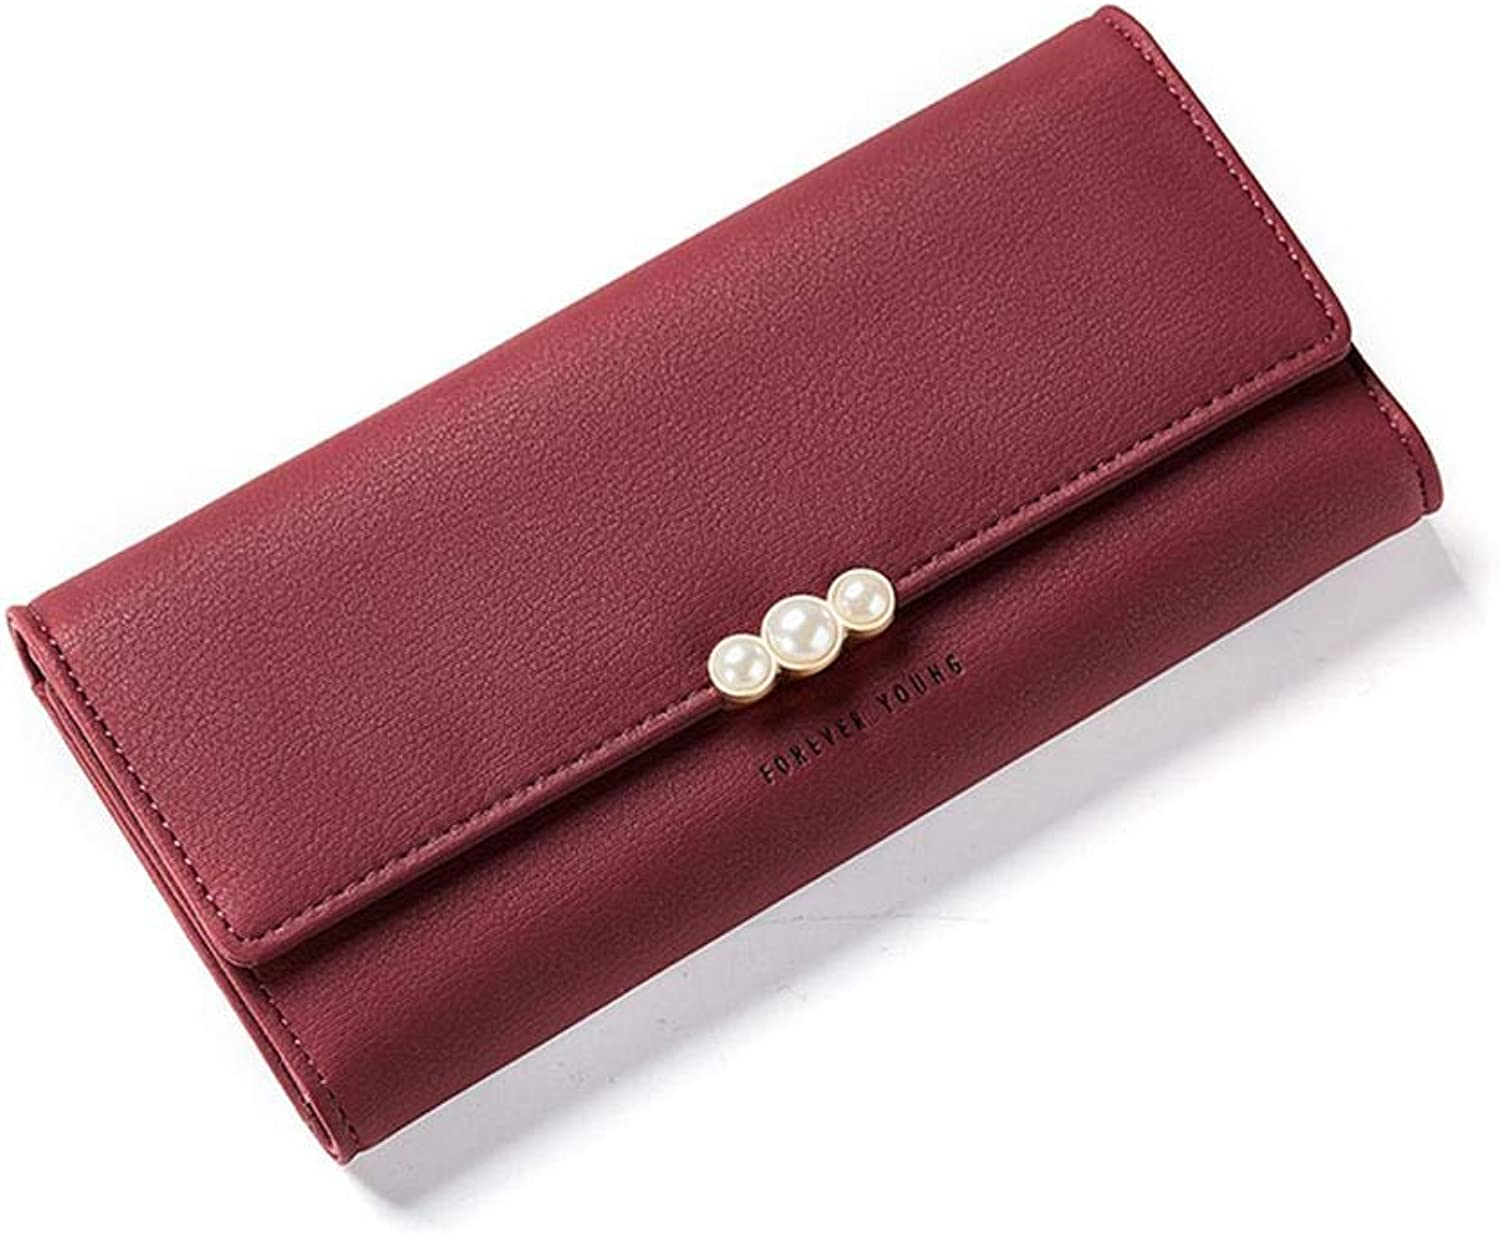 WeoHau Fashion Pearl Element Ladies Pu Wallet Simple MultiFunction Clutch Bag Purse,Wine Red